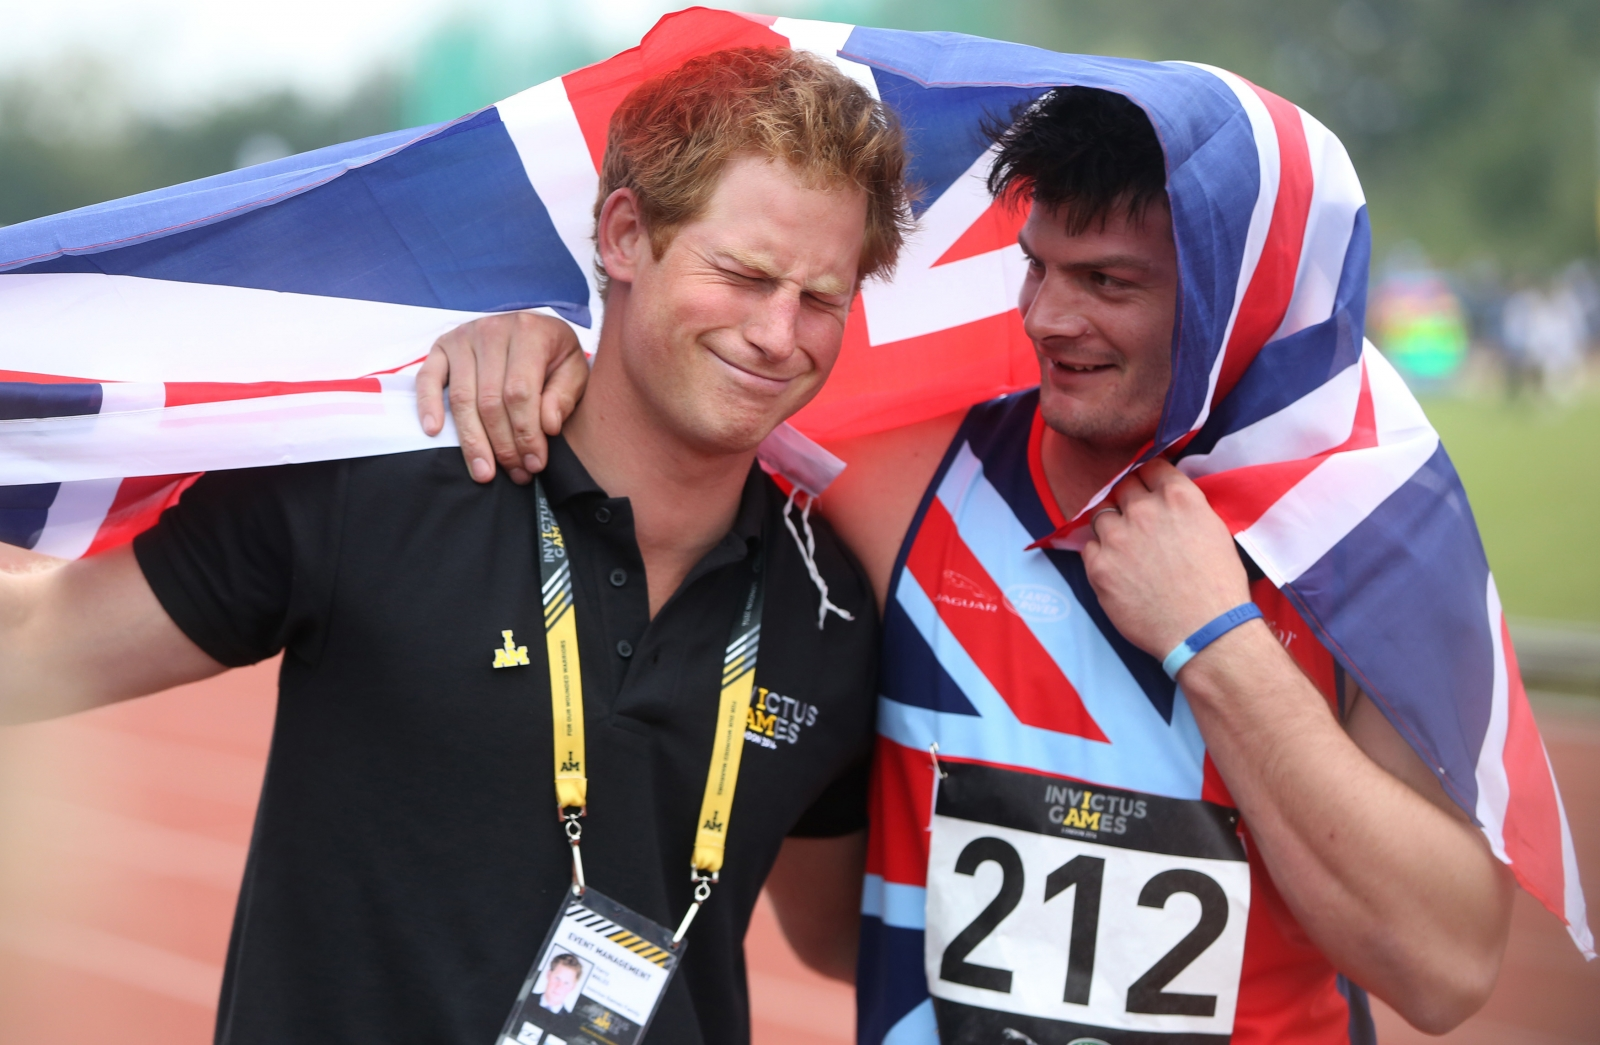 Prince Harry and David Henson Invictus Games